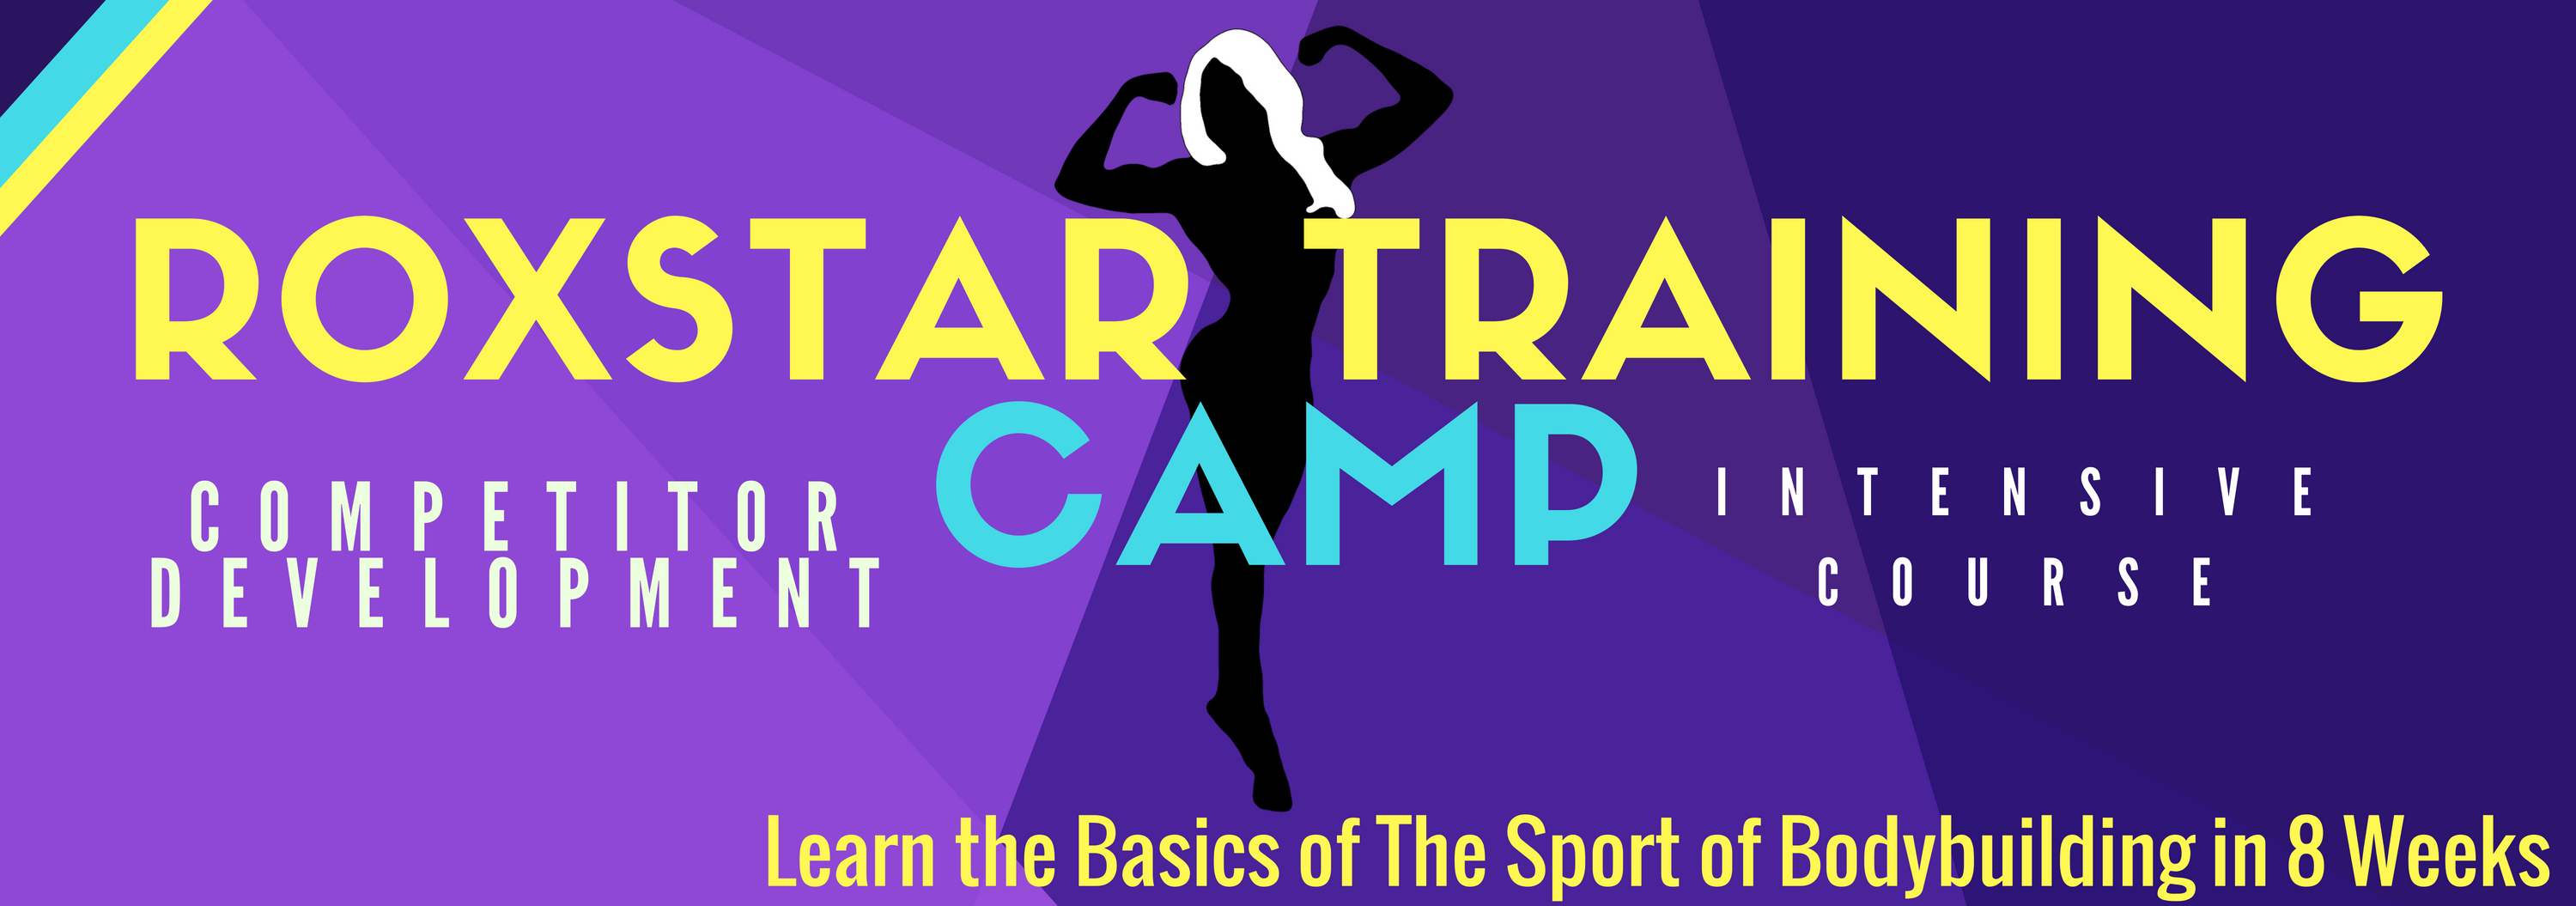 RoxStar Training Camp: 8 Week Competitor's Boot Camp Intensive